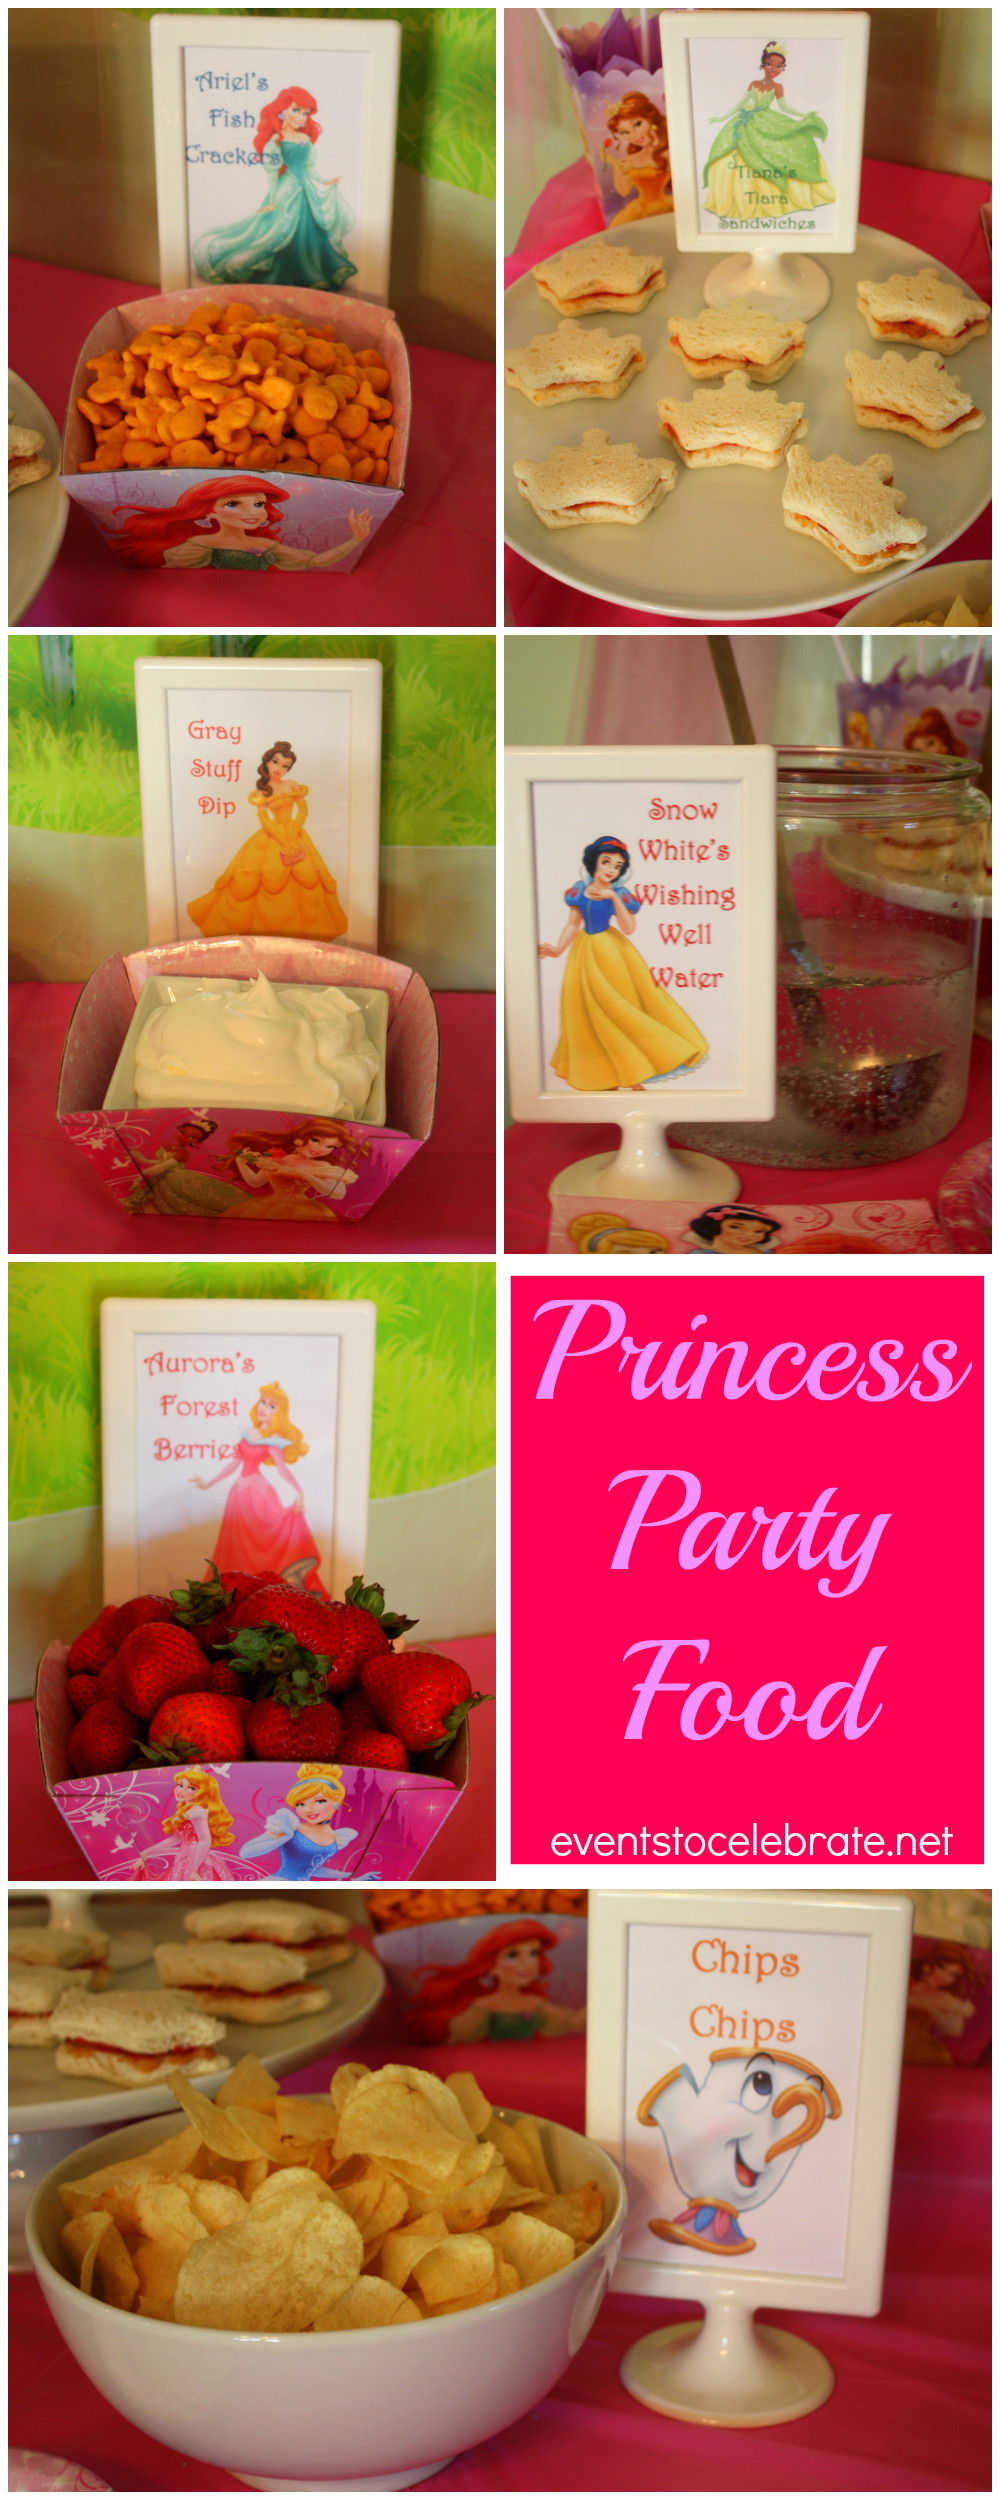 Disney Princess Party Food Ideas  Kids Birthday Parties Archives Page 2 of 7 events to